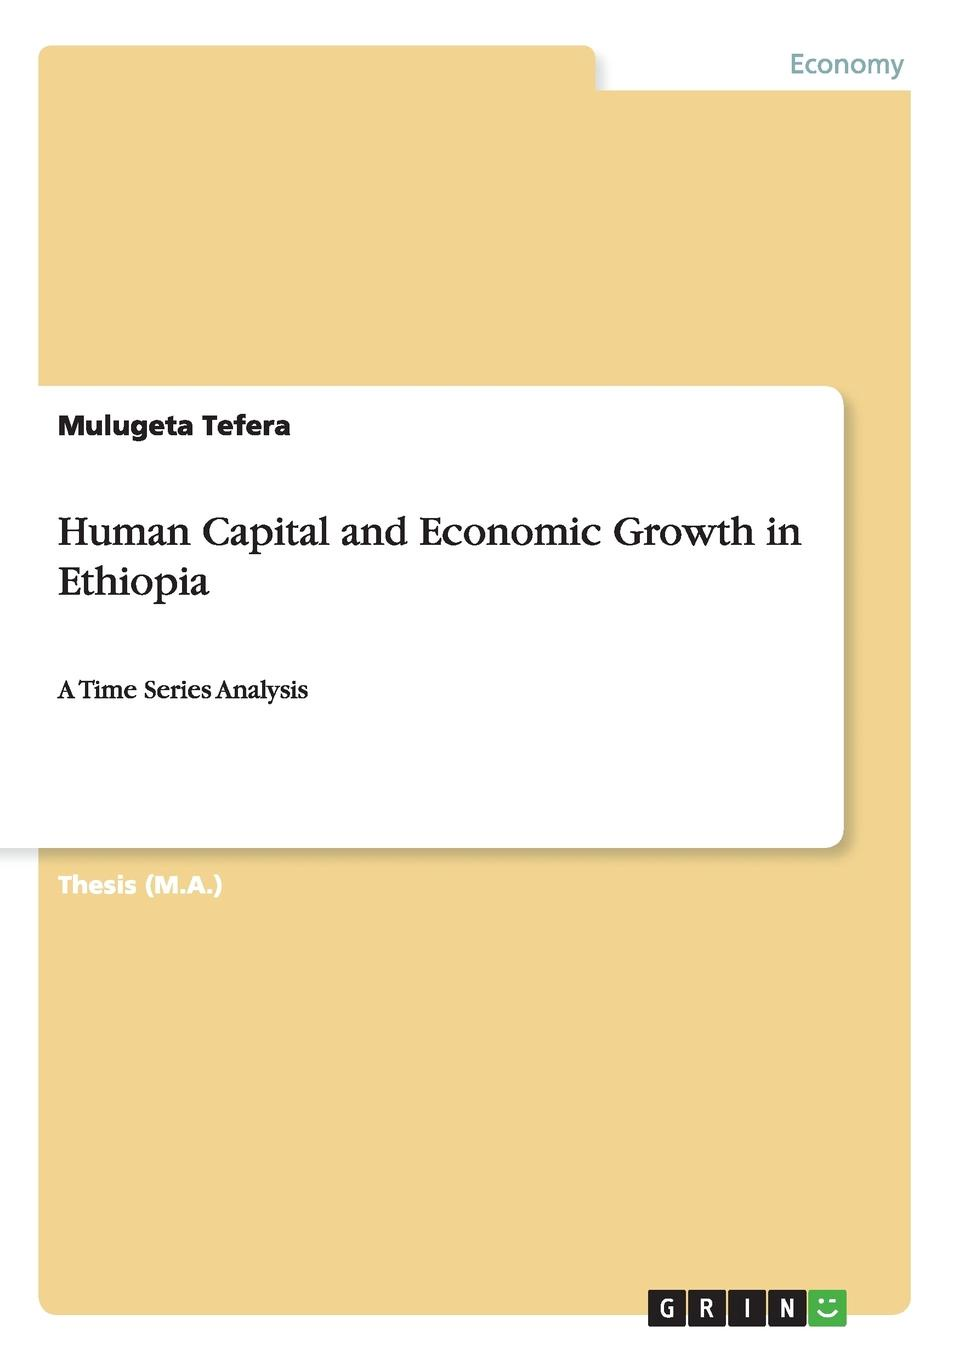 Mulugeta Tefera Human Capital and Economic Growth in Ethiopia effect of rosemary extracts on the growth of skin infections